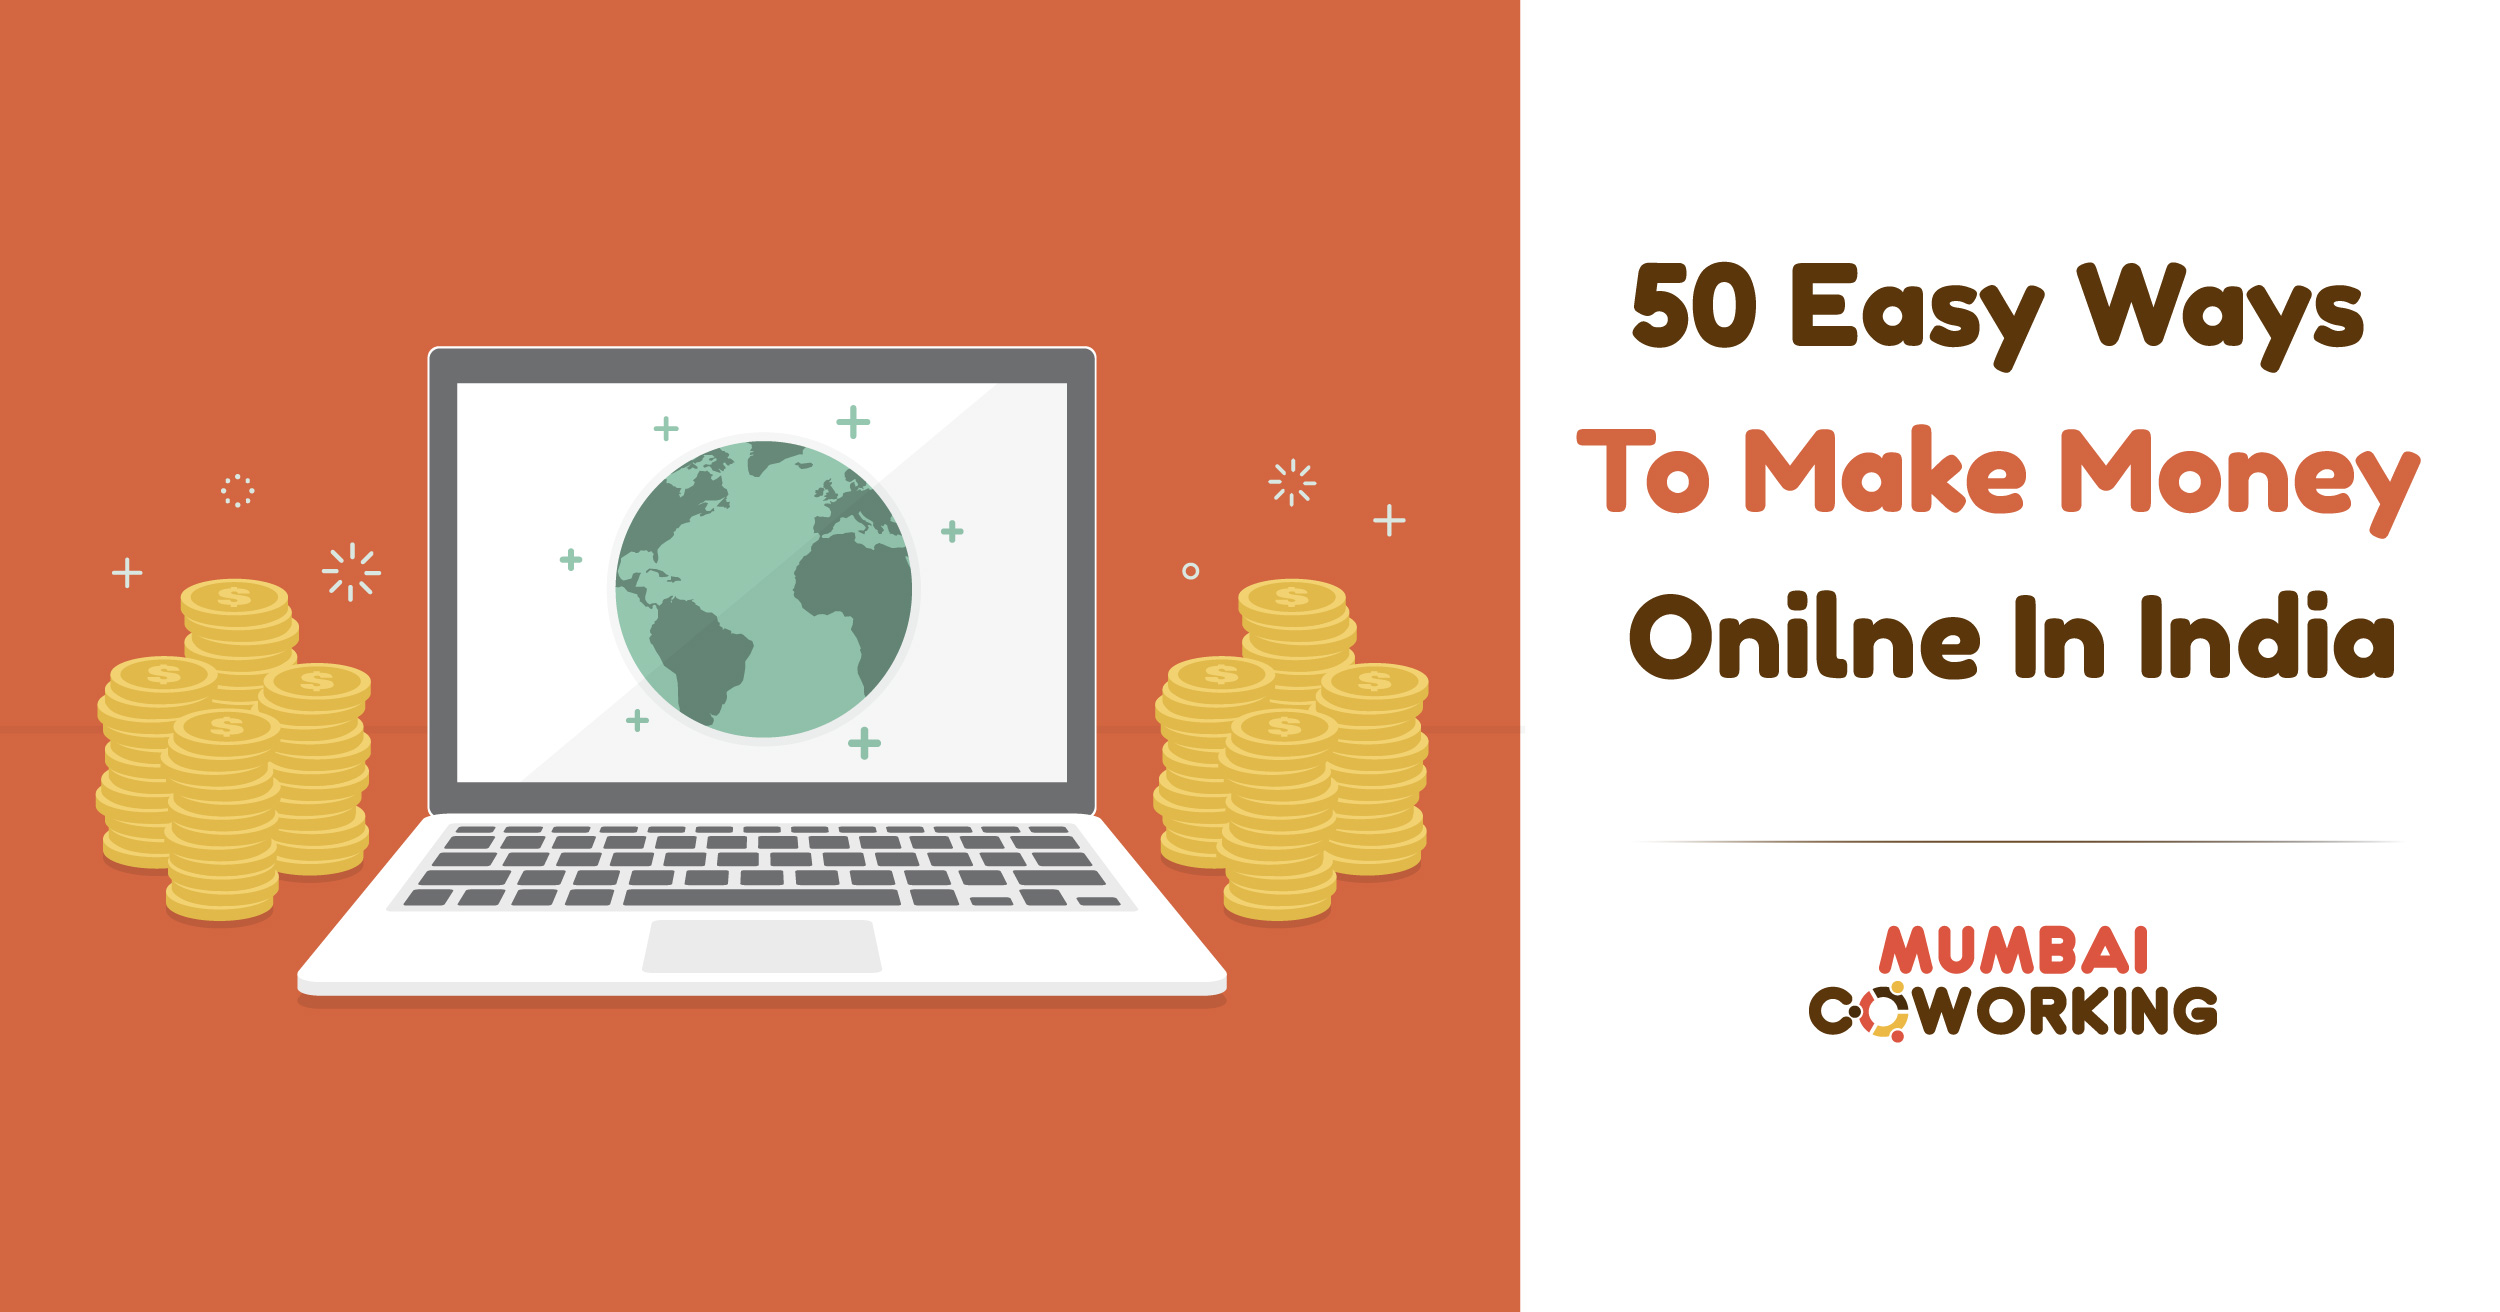 Make Money Online Check These 50 Easy Ways To And Earn A Lac Per Month